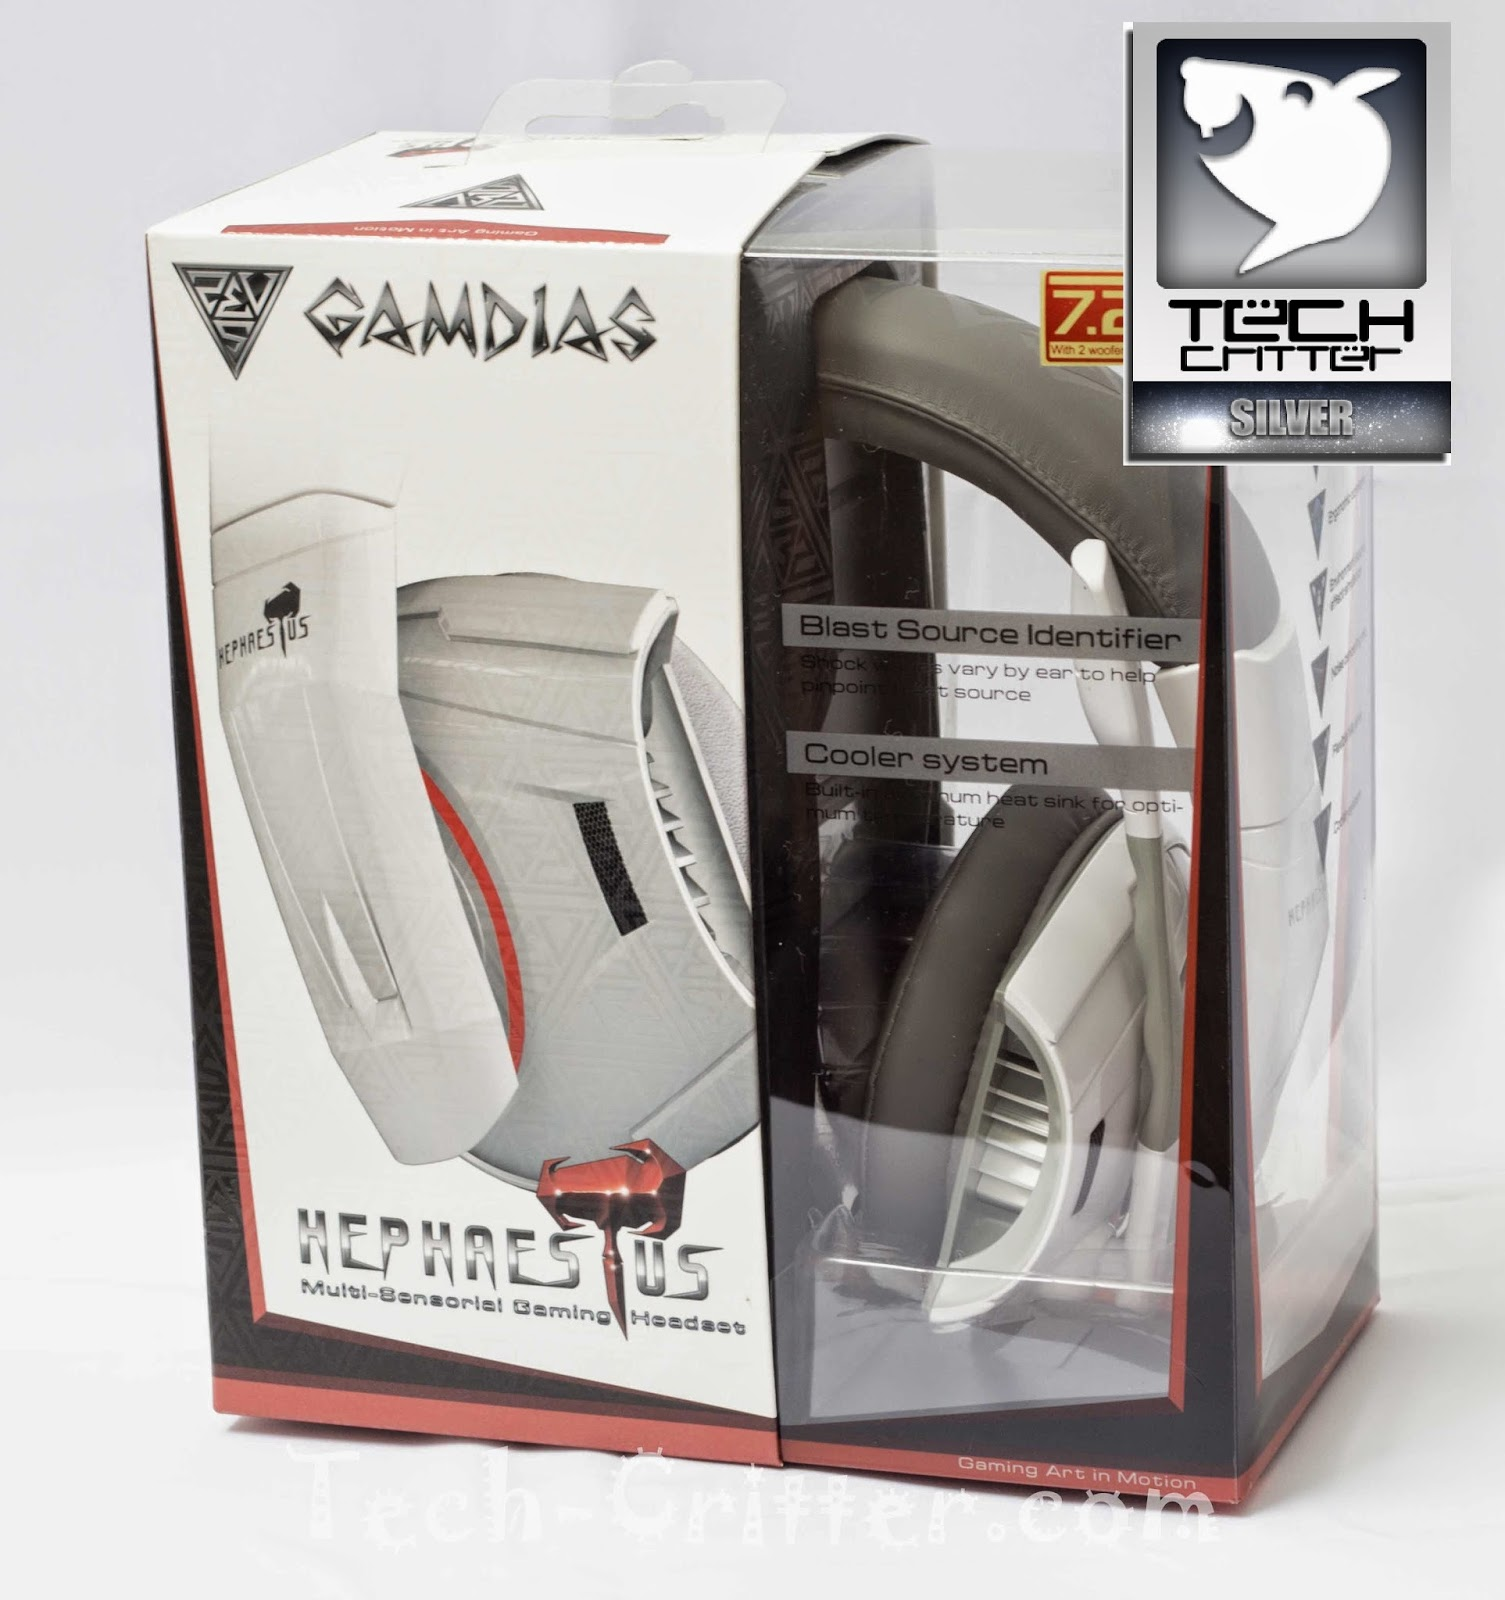 Unboxing & Review: Gamdias Hephaestus Gaming Headset 81